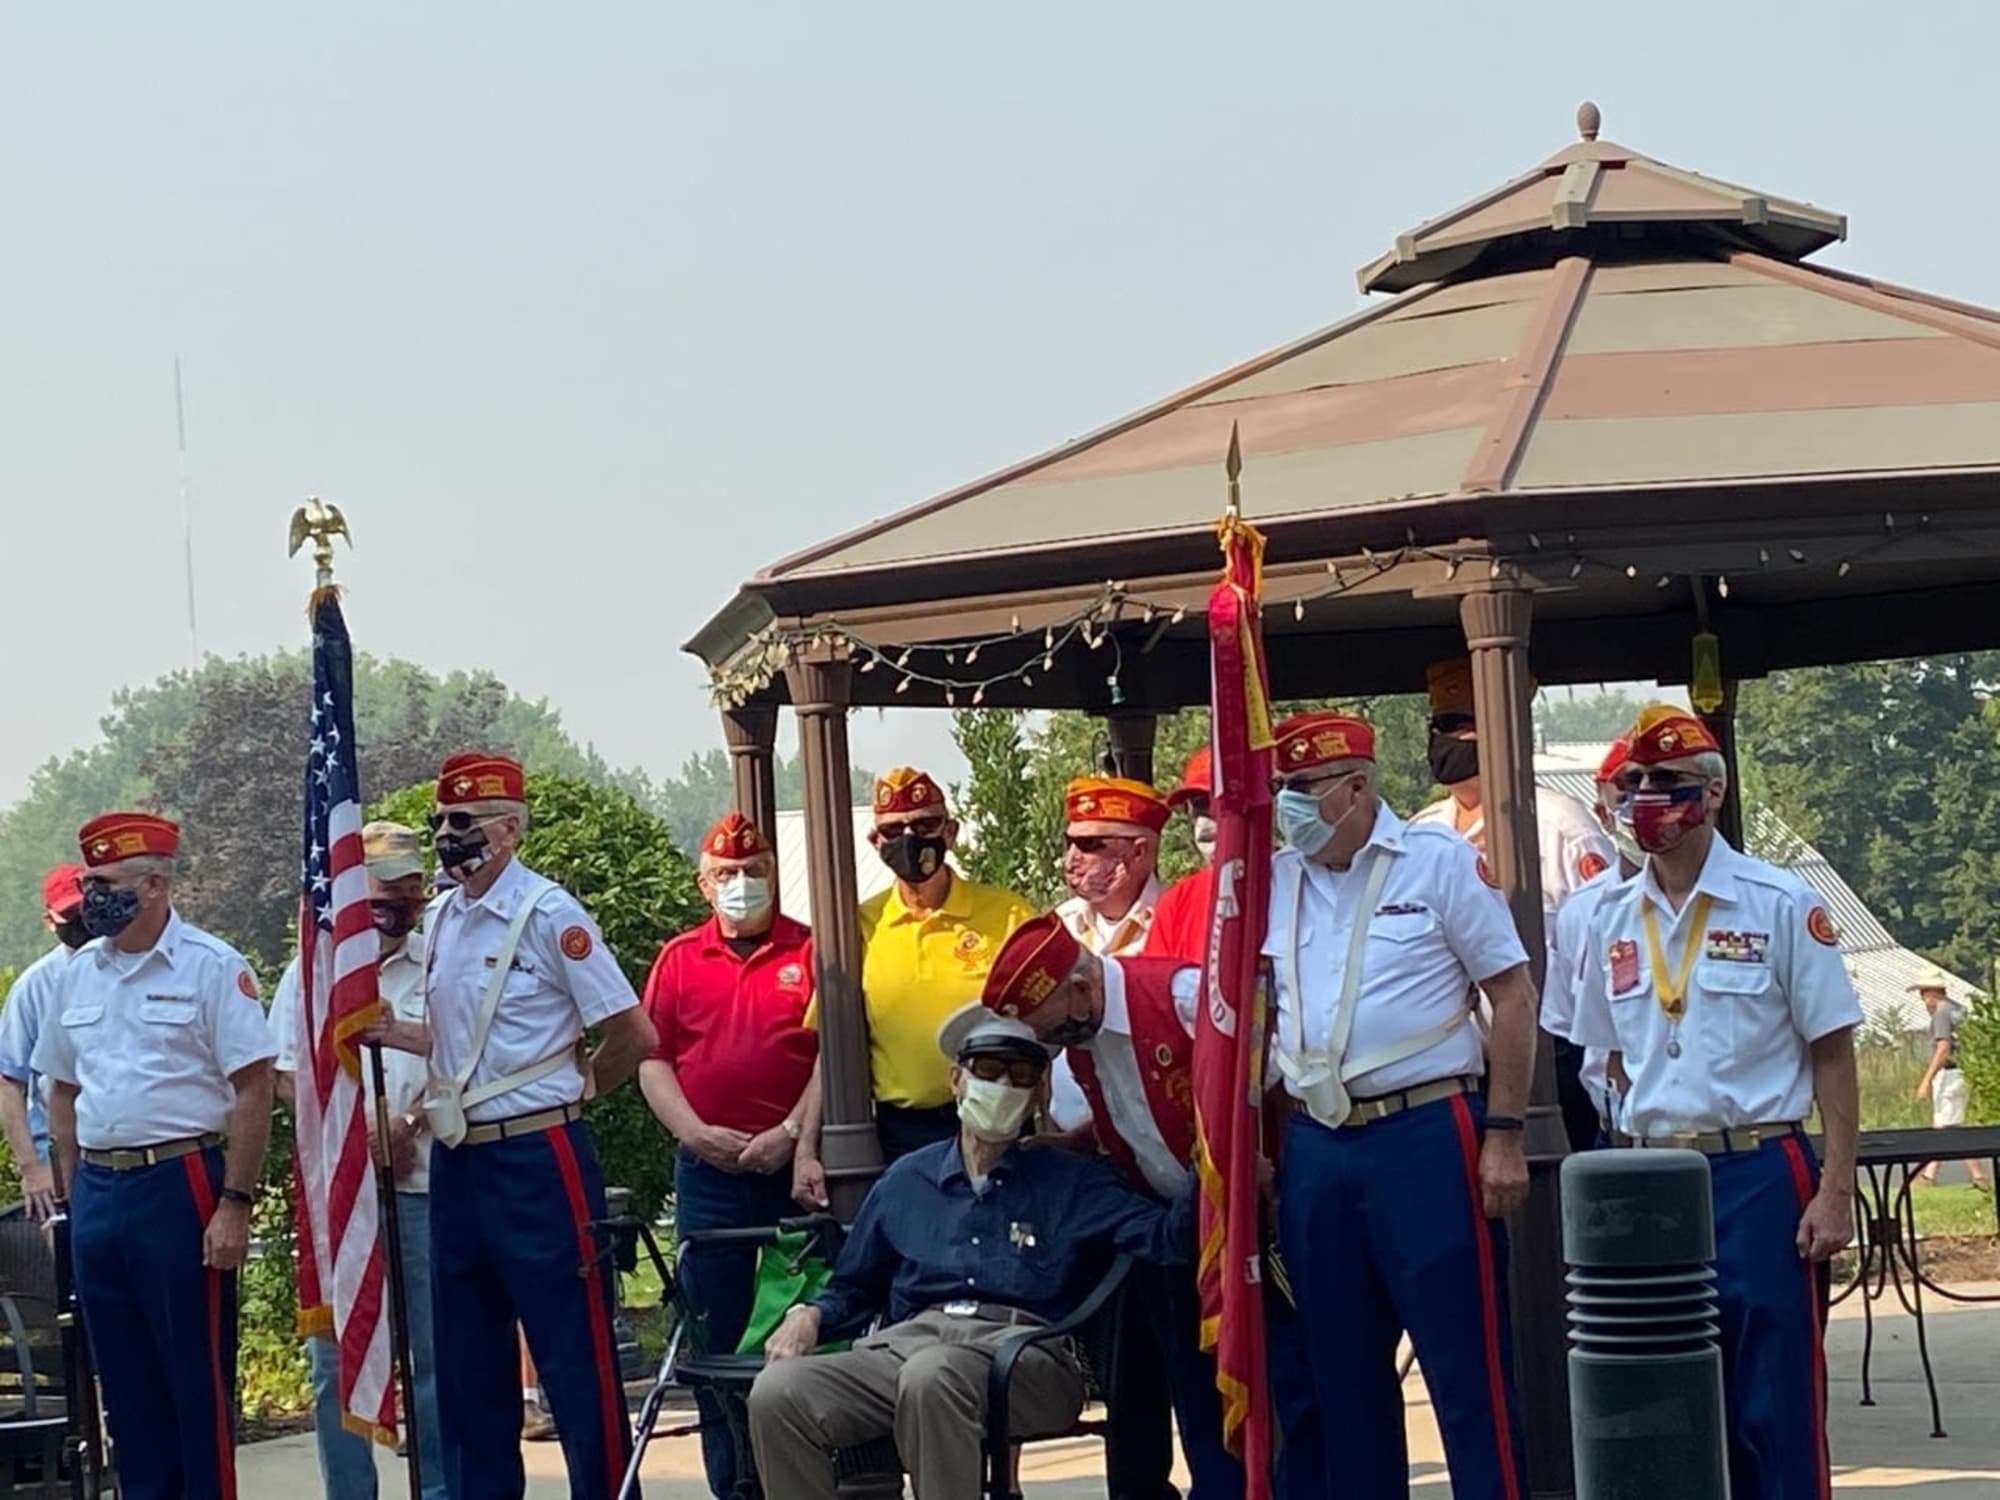 Veterans with flags at Hillcrest of Loveland in Loveland, Colorado